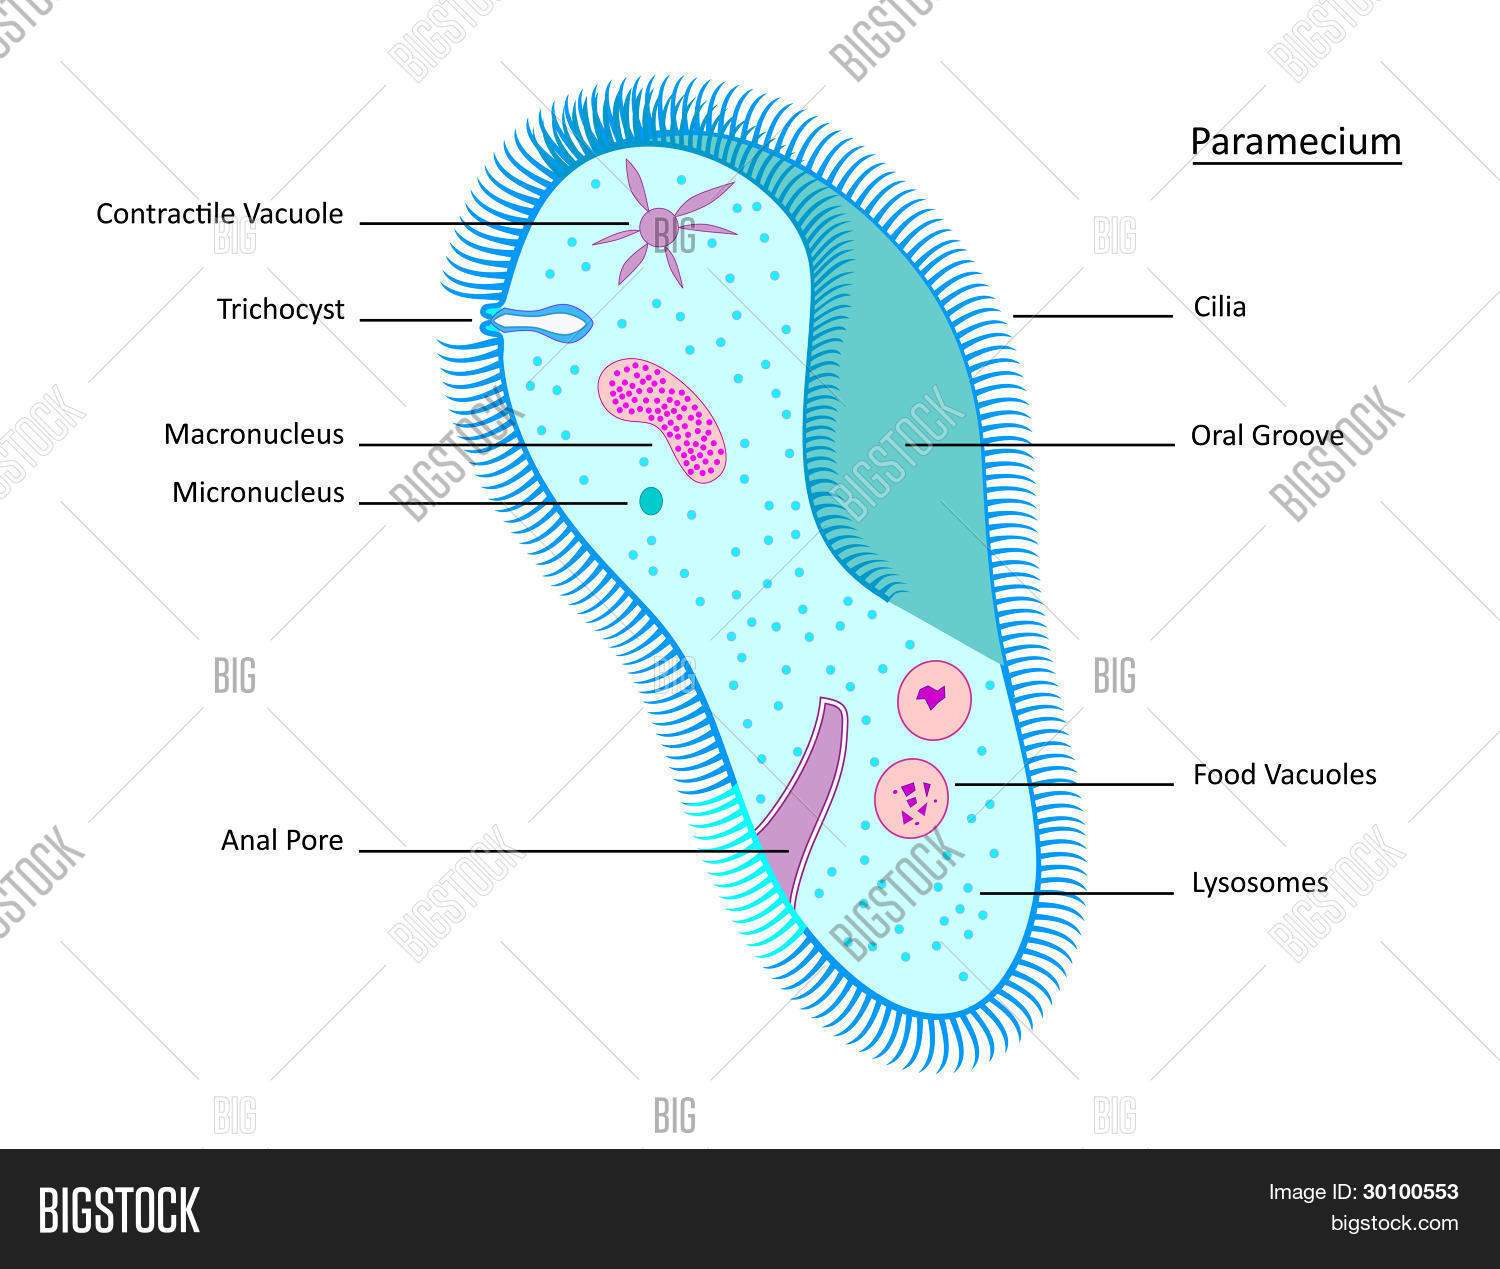 hight resolution of close image preview image preview paramecium